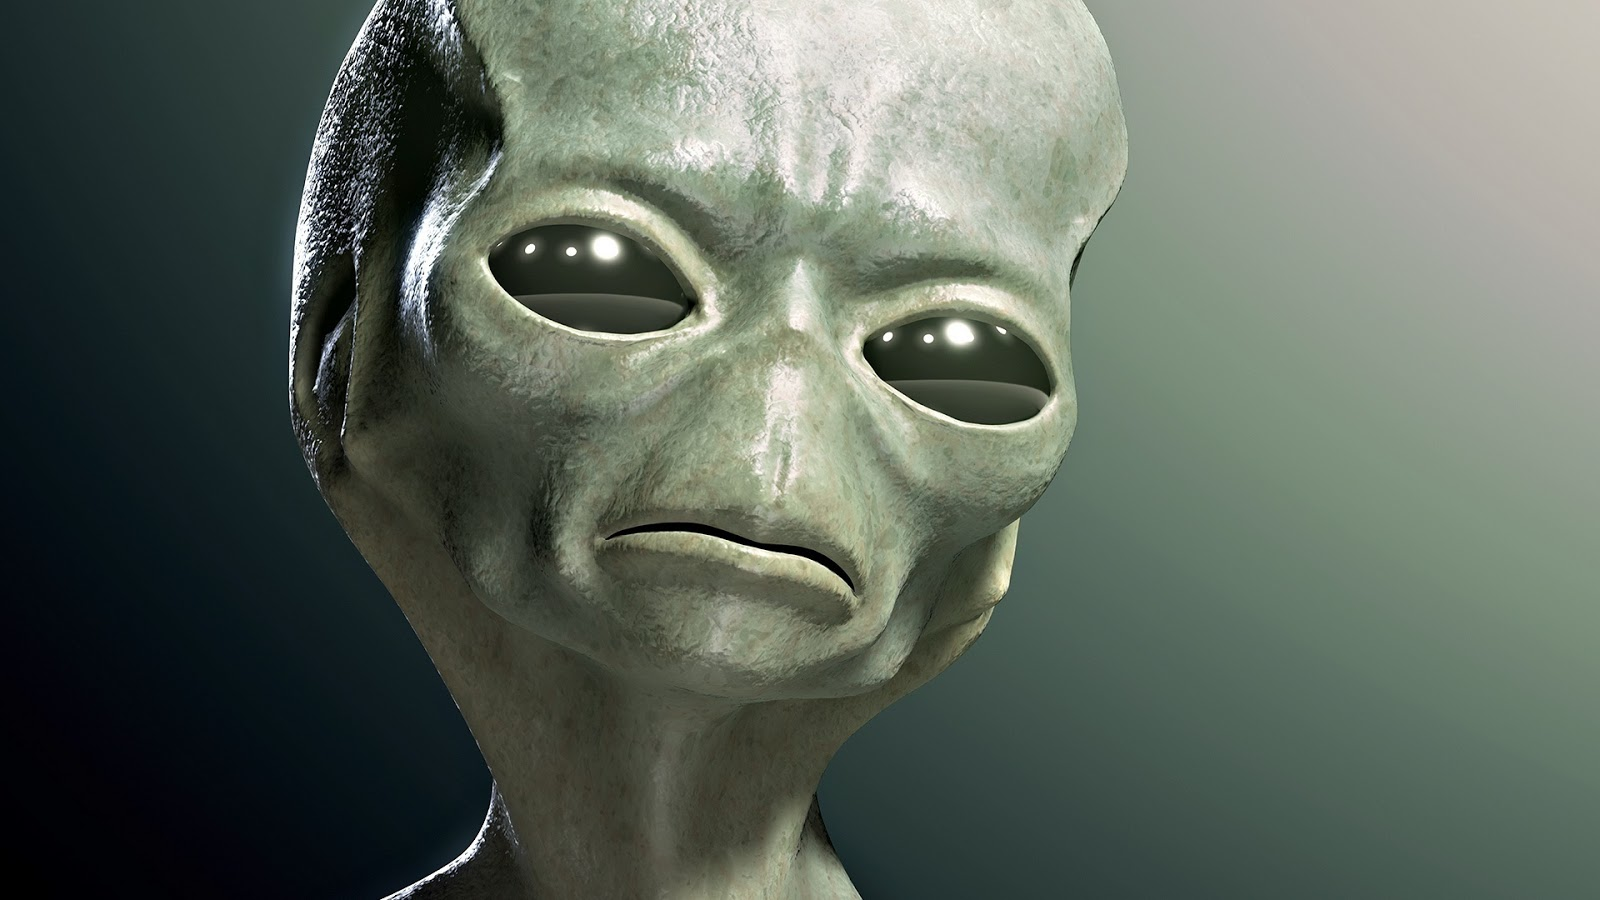 pictures-alien-gray-eyes-wallp-25705